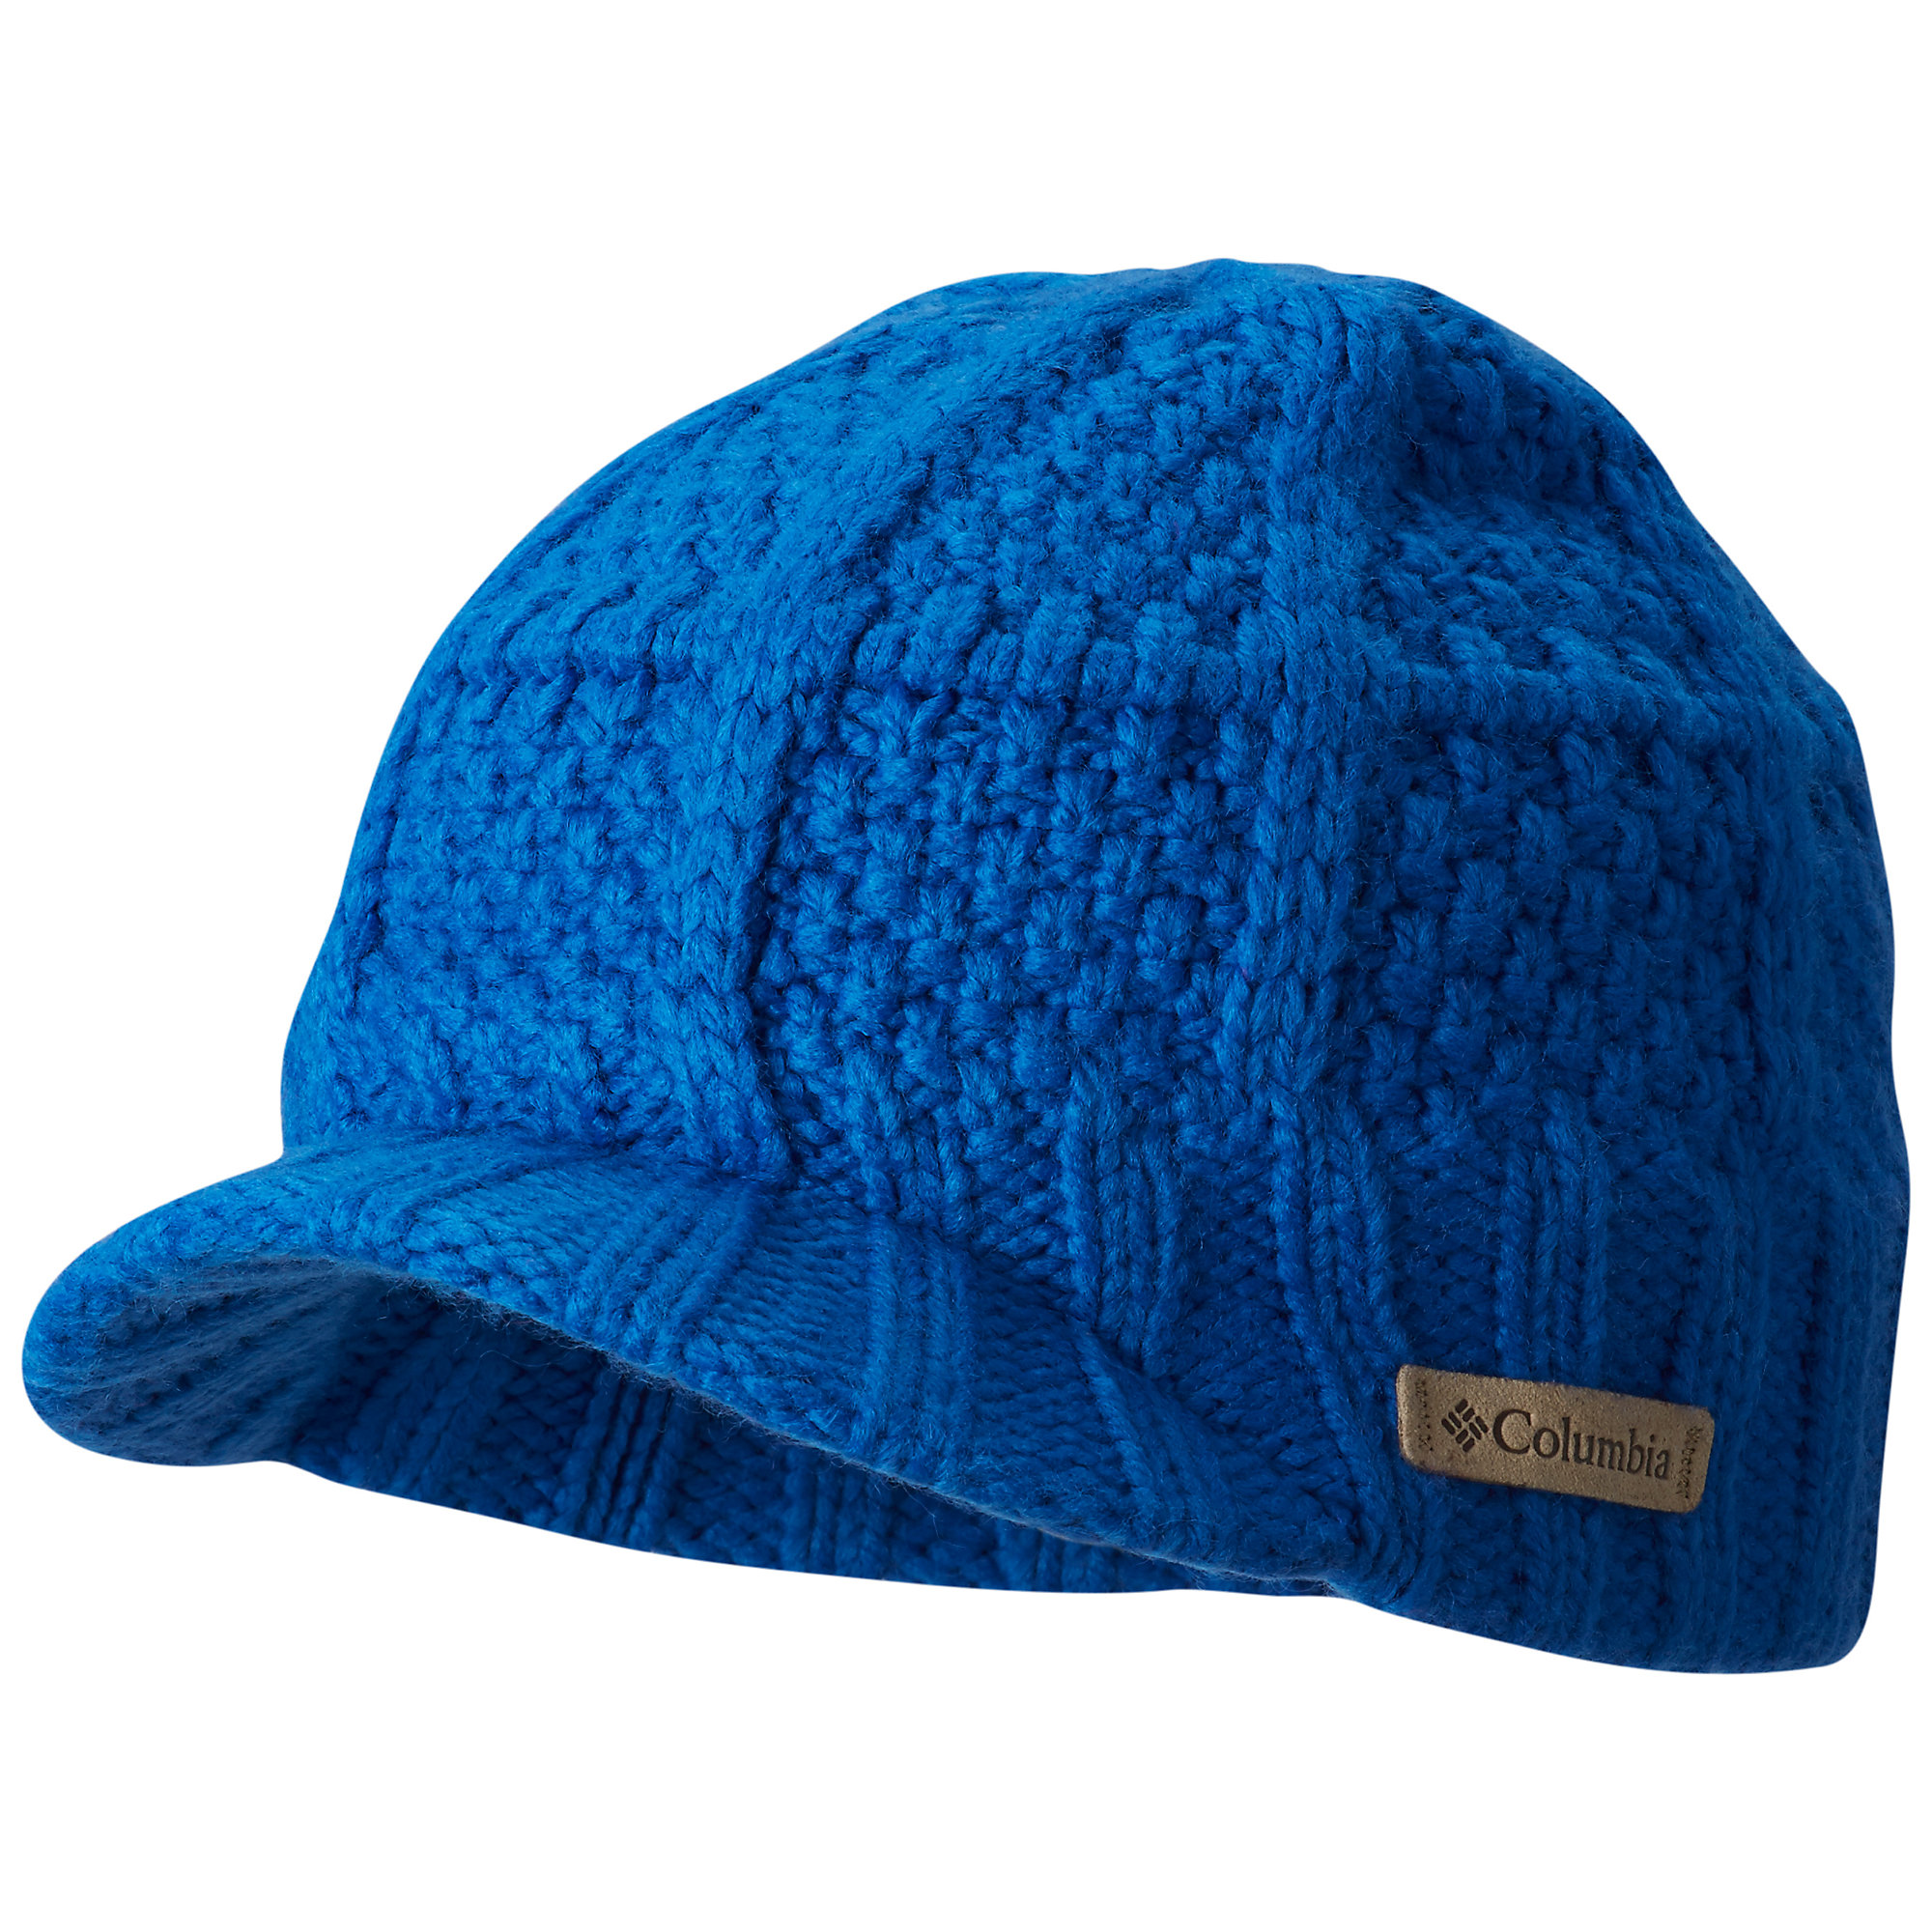 Columbia Adventure Ride Visor Beanie